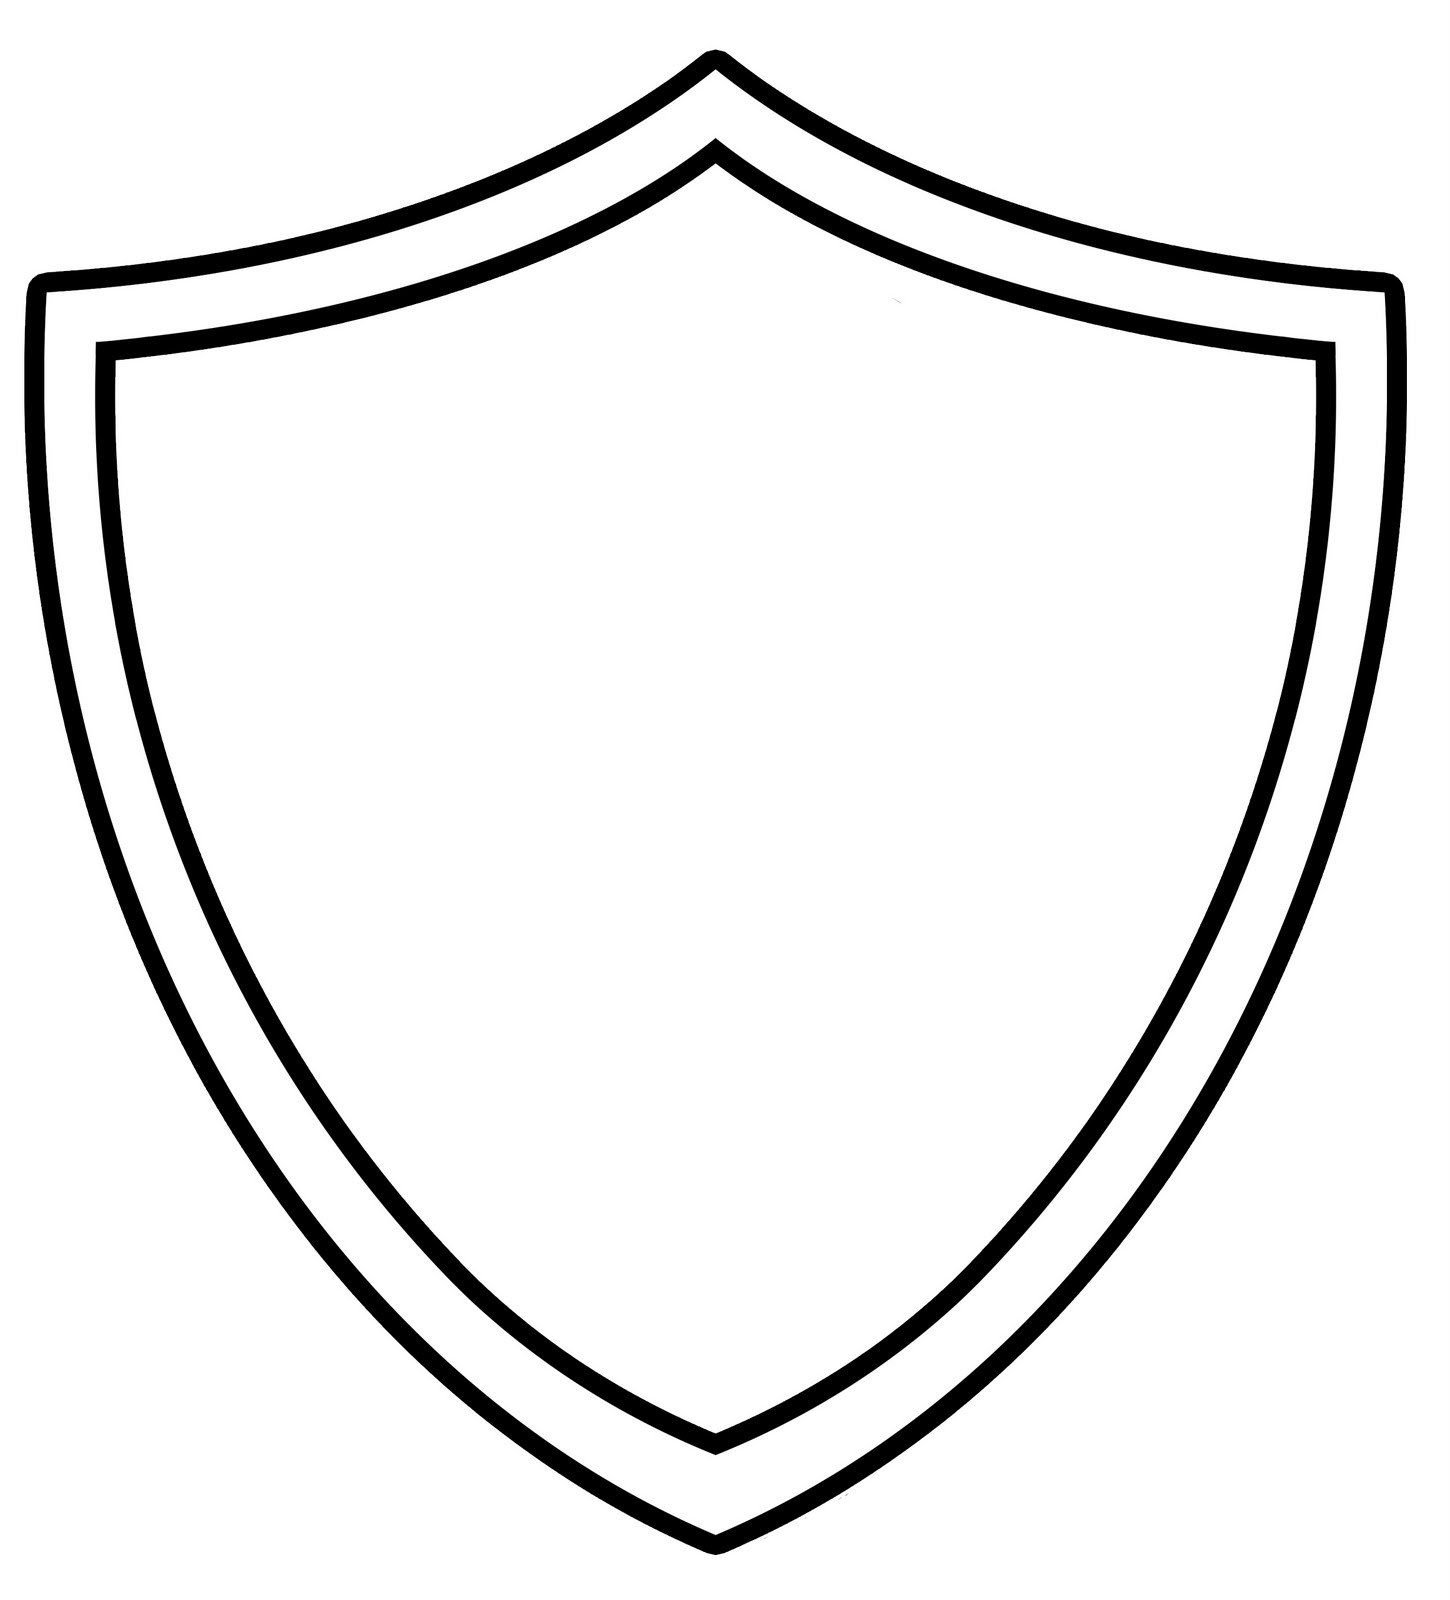 1450x1600 Shield Outline